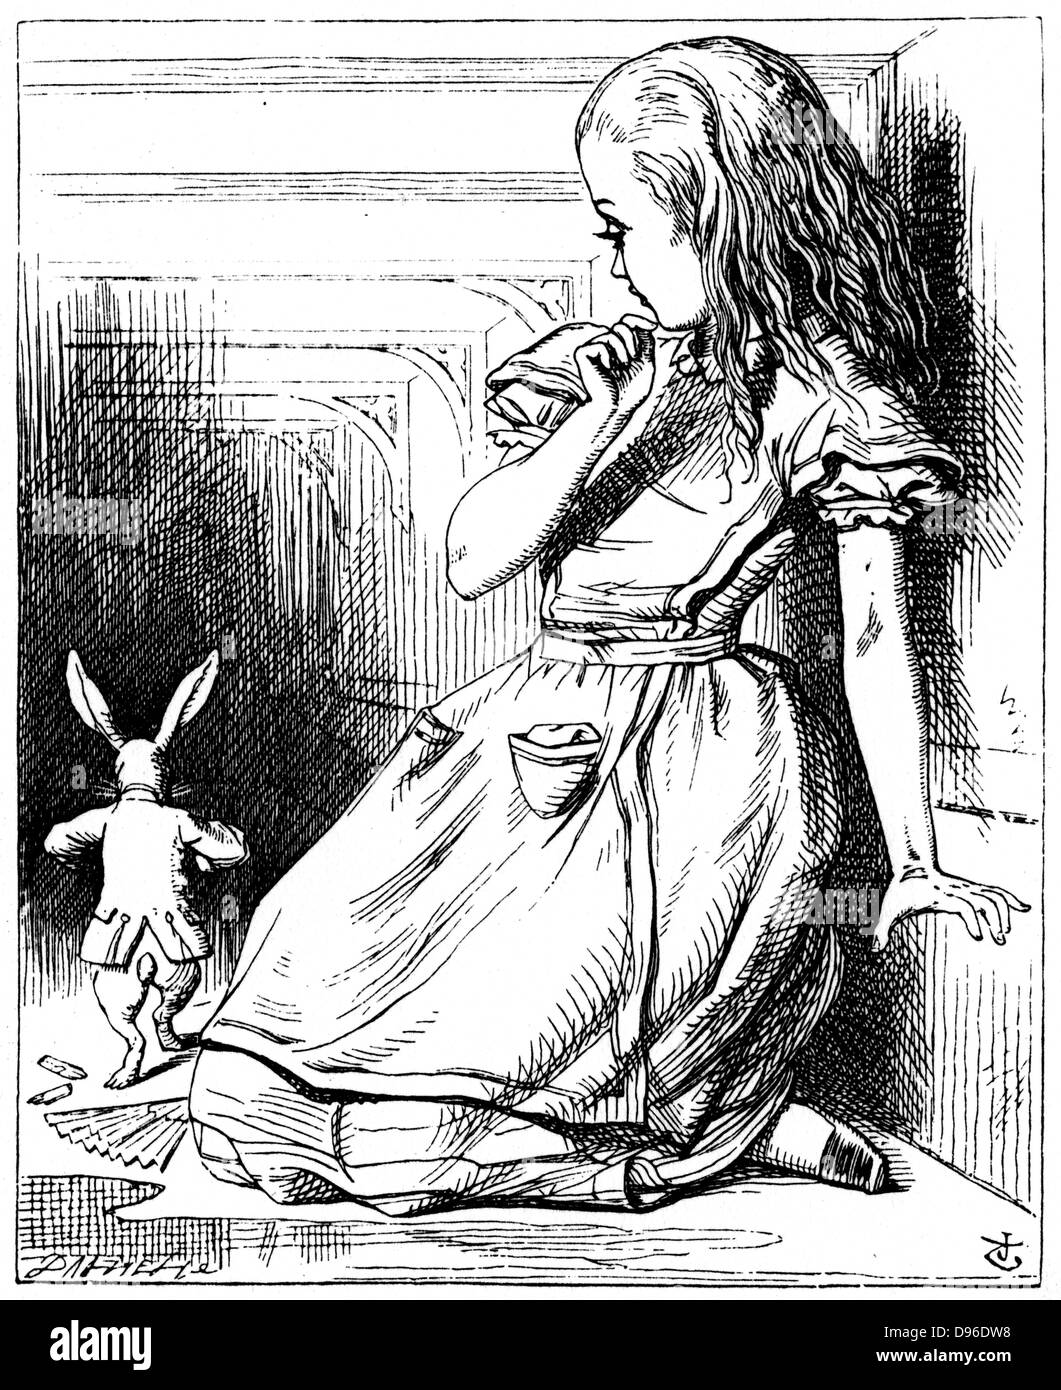 Illustration by John Tenn iel for 'Alice's Adventures in Wonderland' by Lewis Carroll (London, 1865). - Stock Image